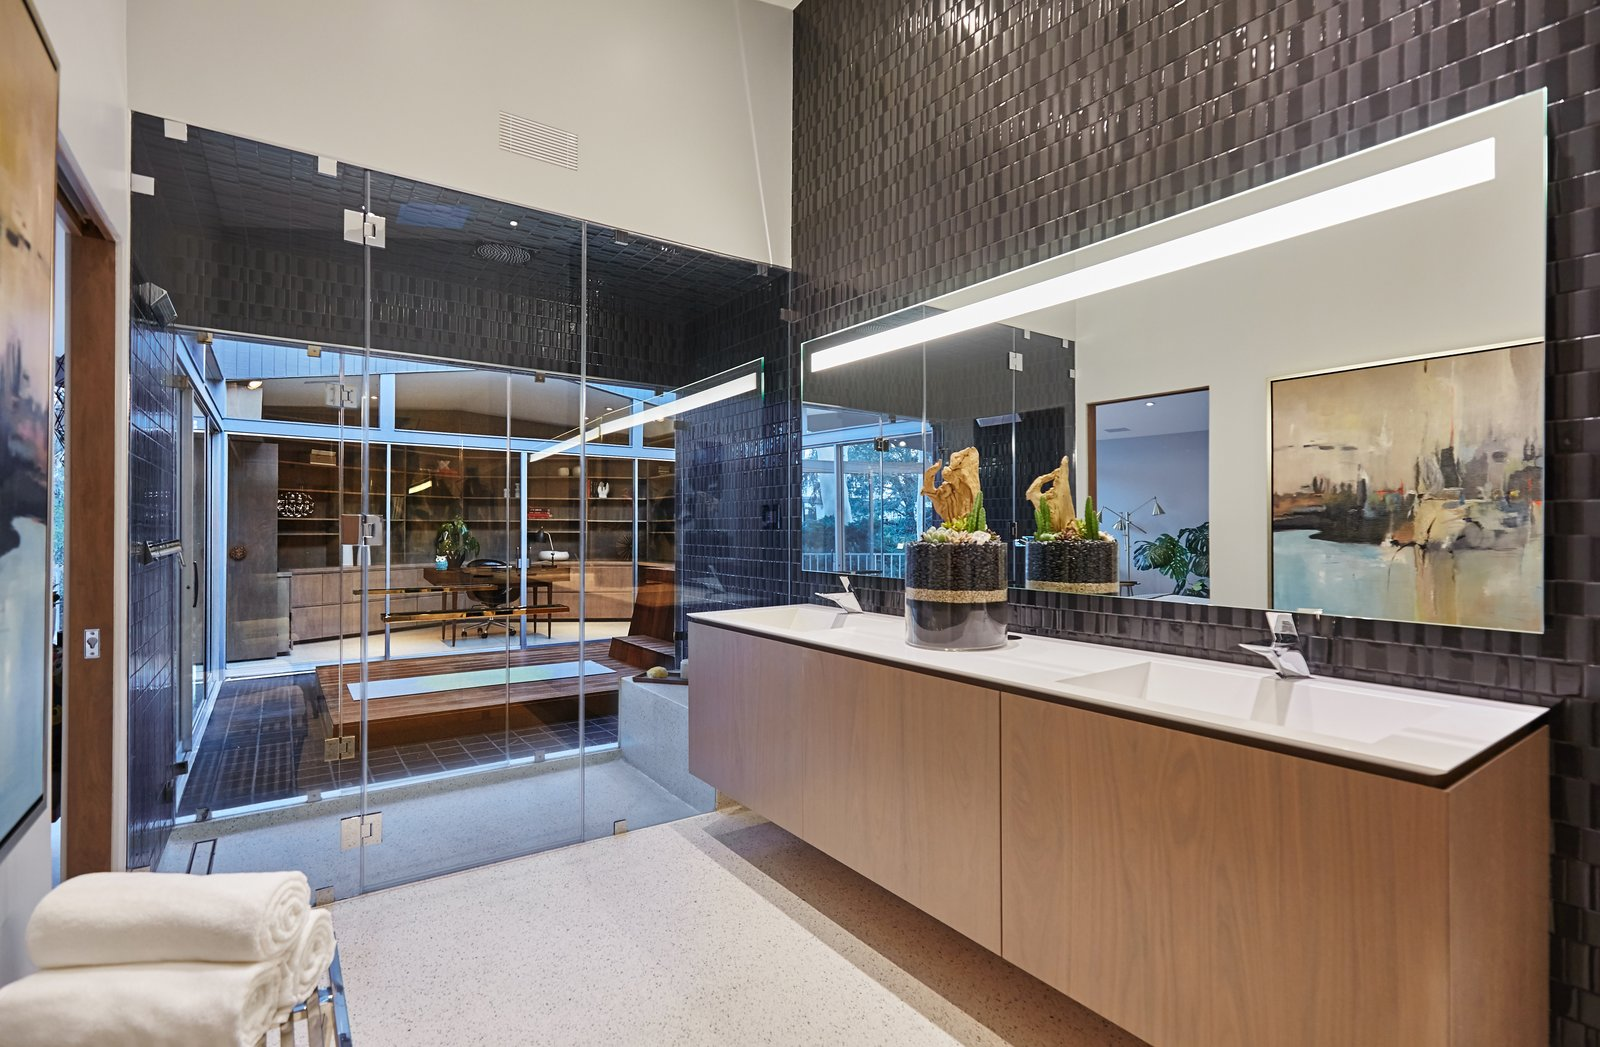 Photo 9 of 10 in A Hexagonal Midcentury Residence in Southern California Offered at $2.89M